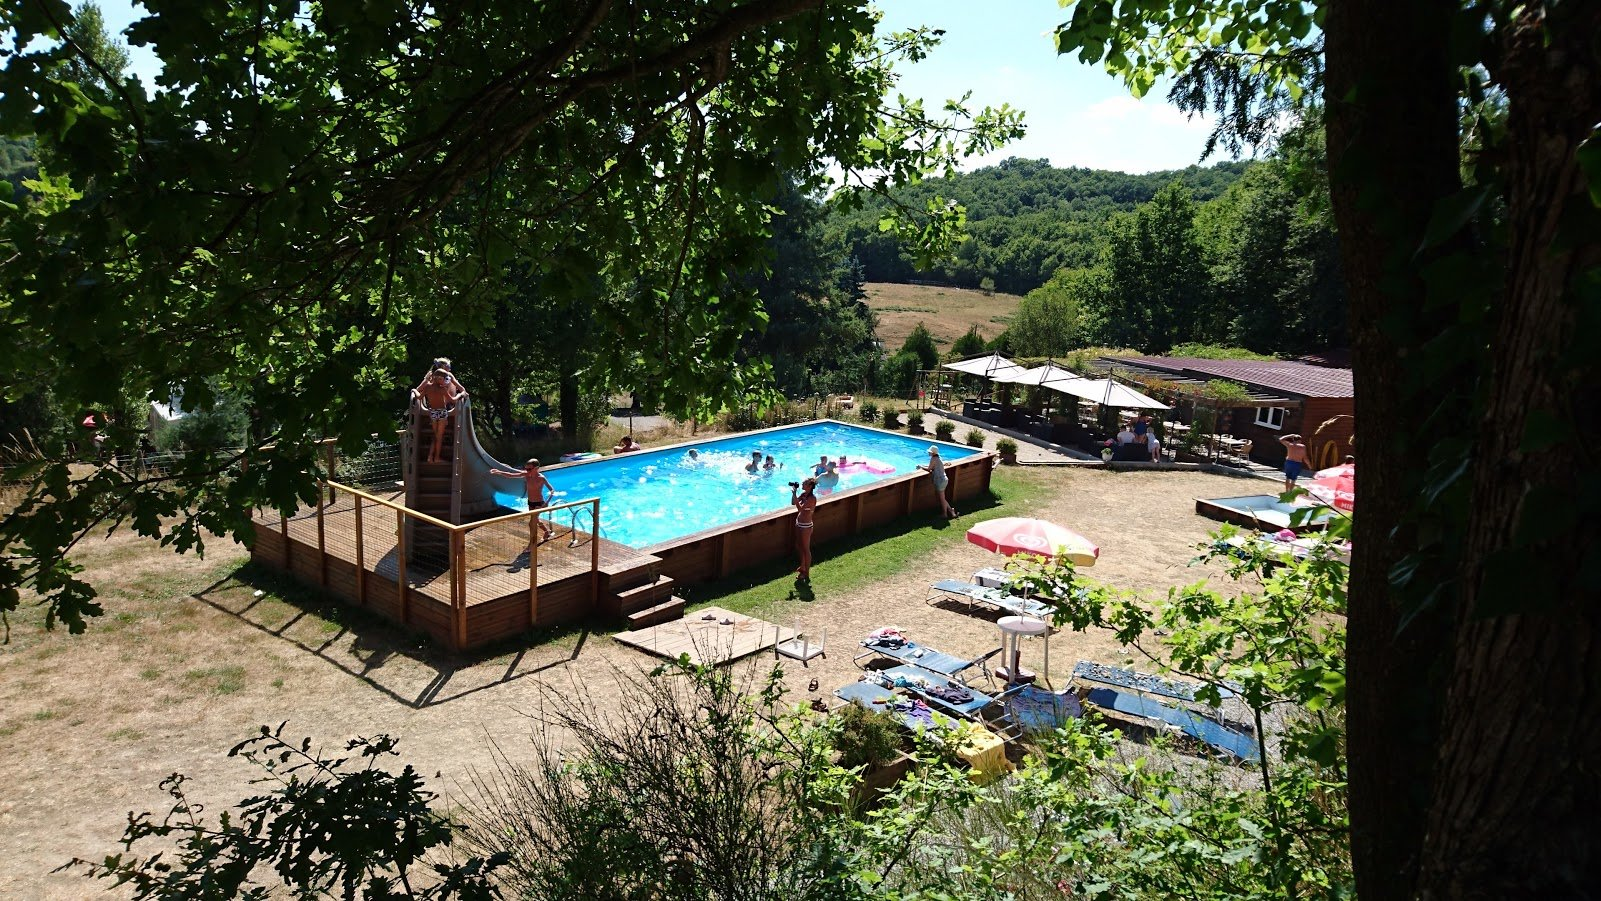 For sale in the Creuse, near Aubusson, a campsite and house.